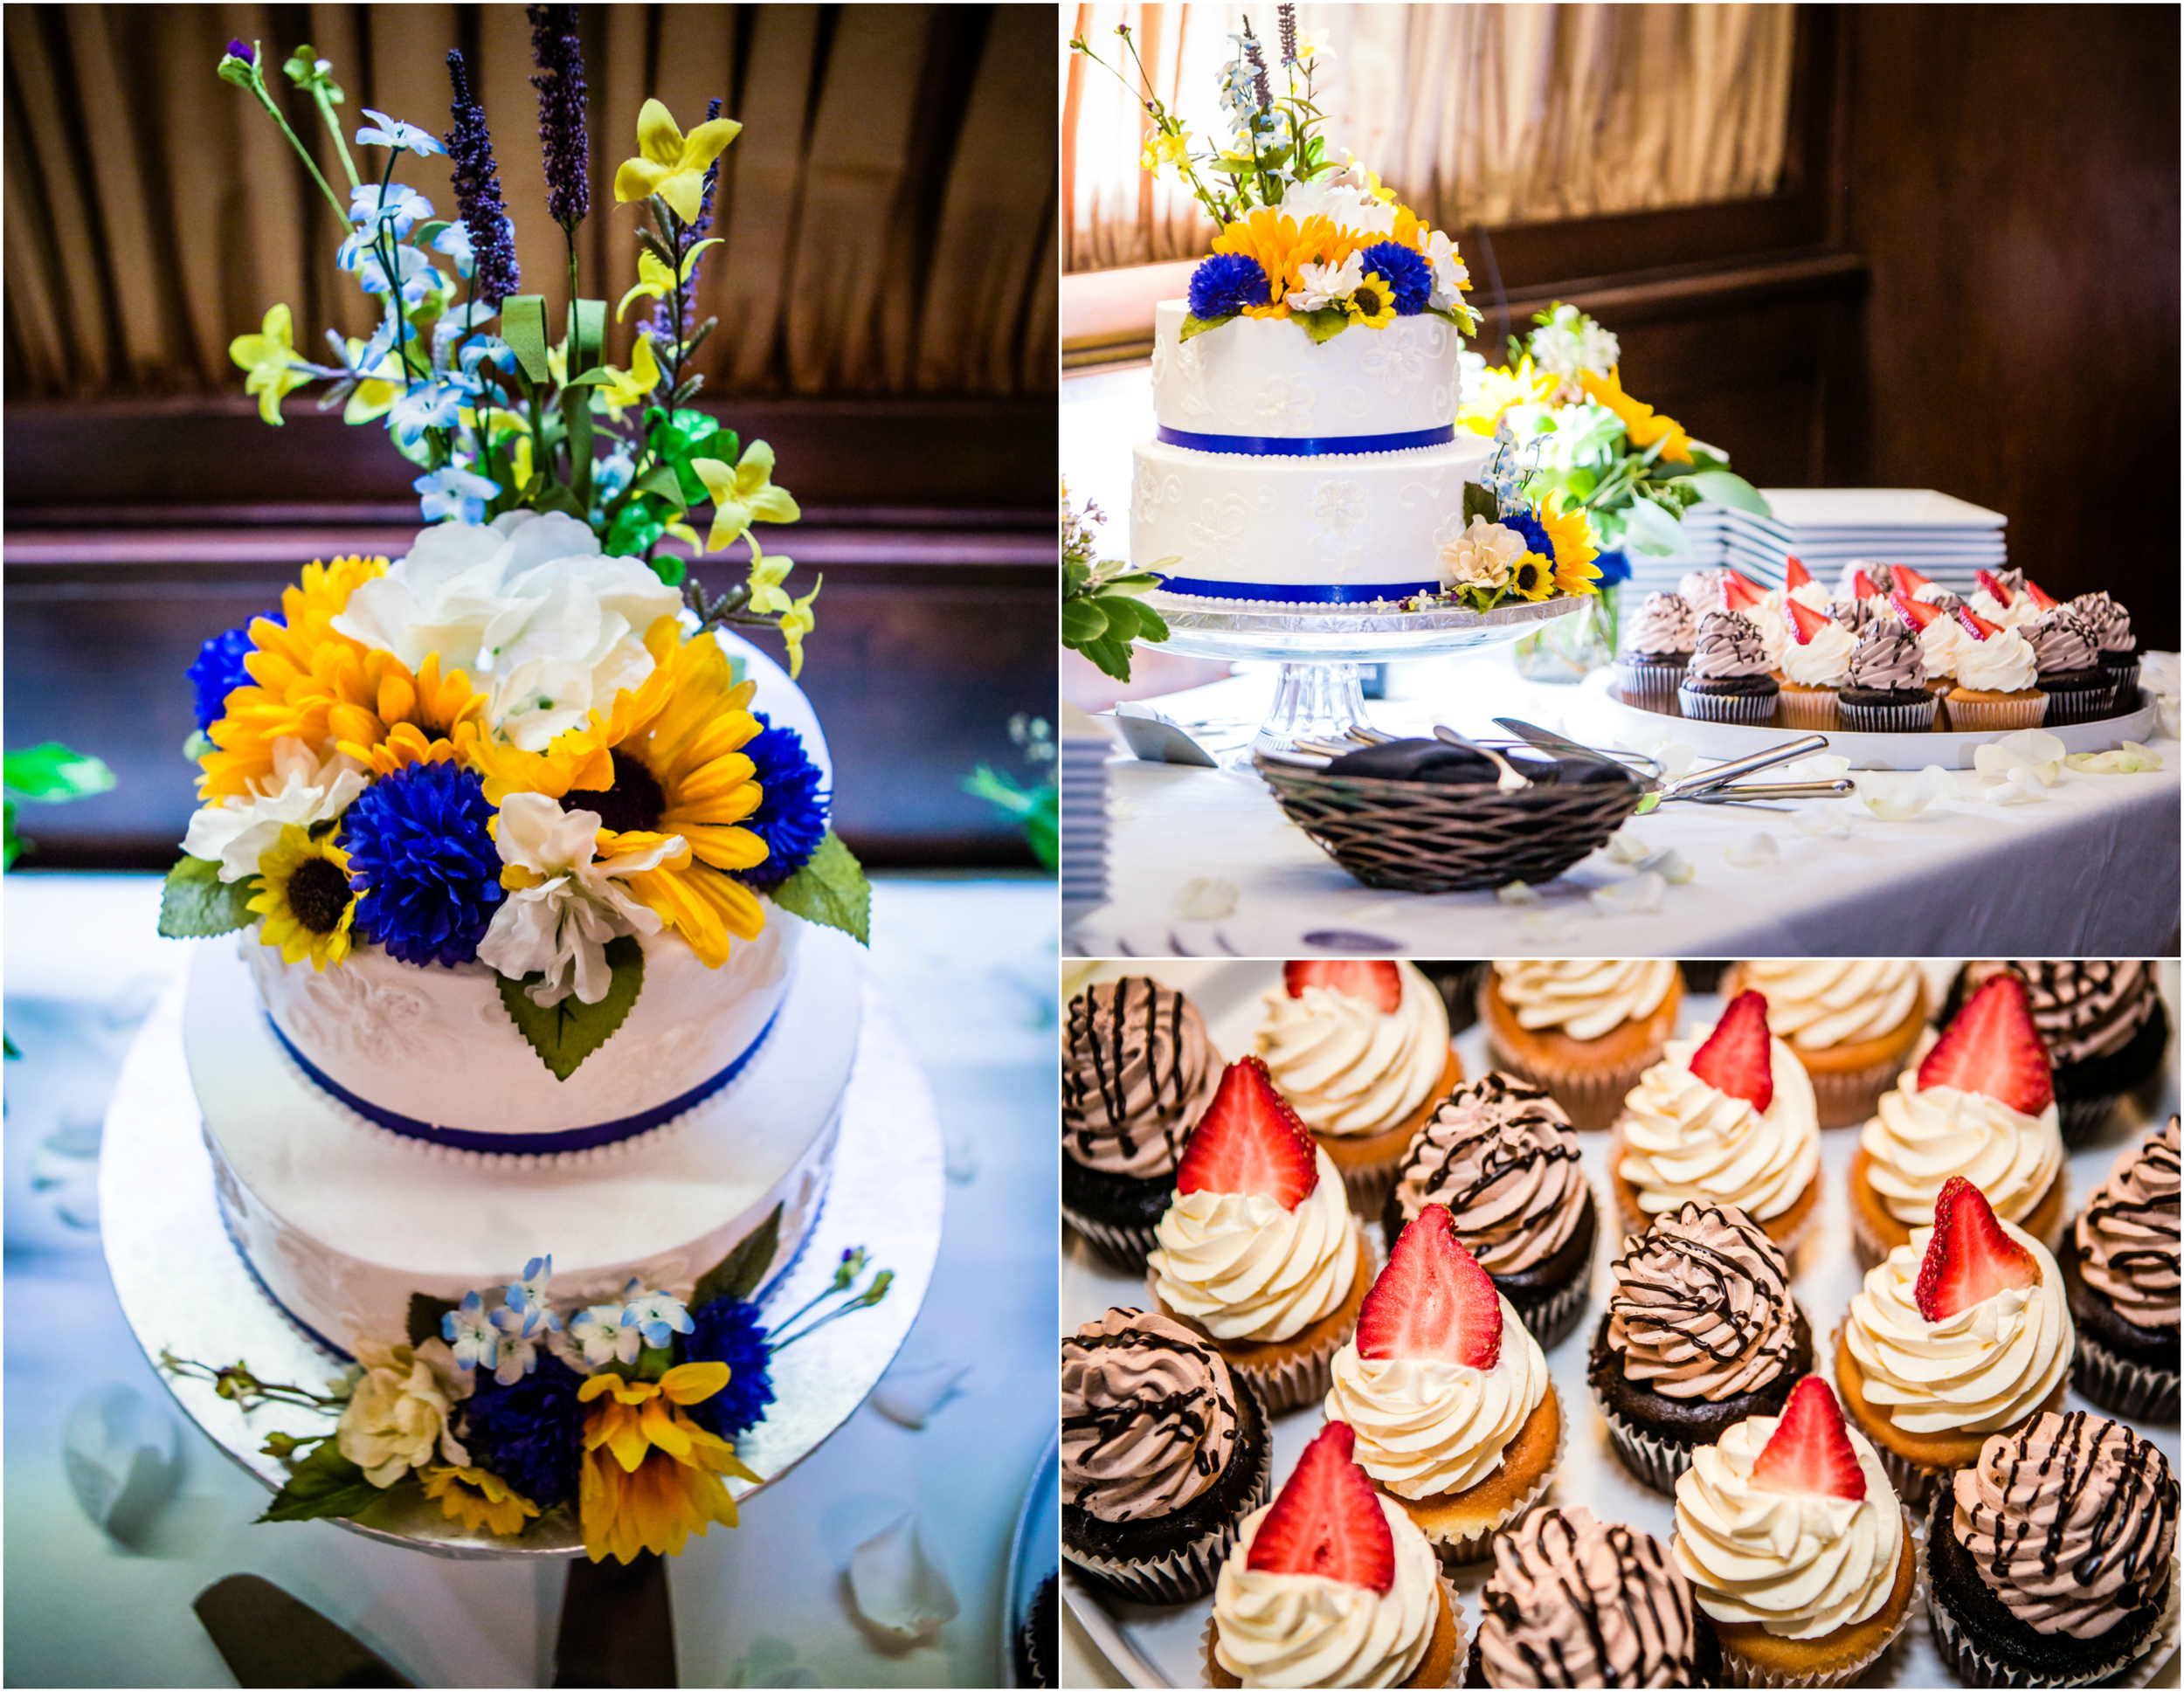 Beautiful wedding cake and cupcakes from Romana Cake House. Photograph by JMGant Photography